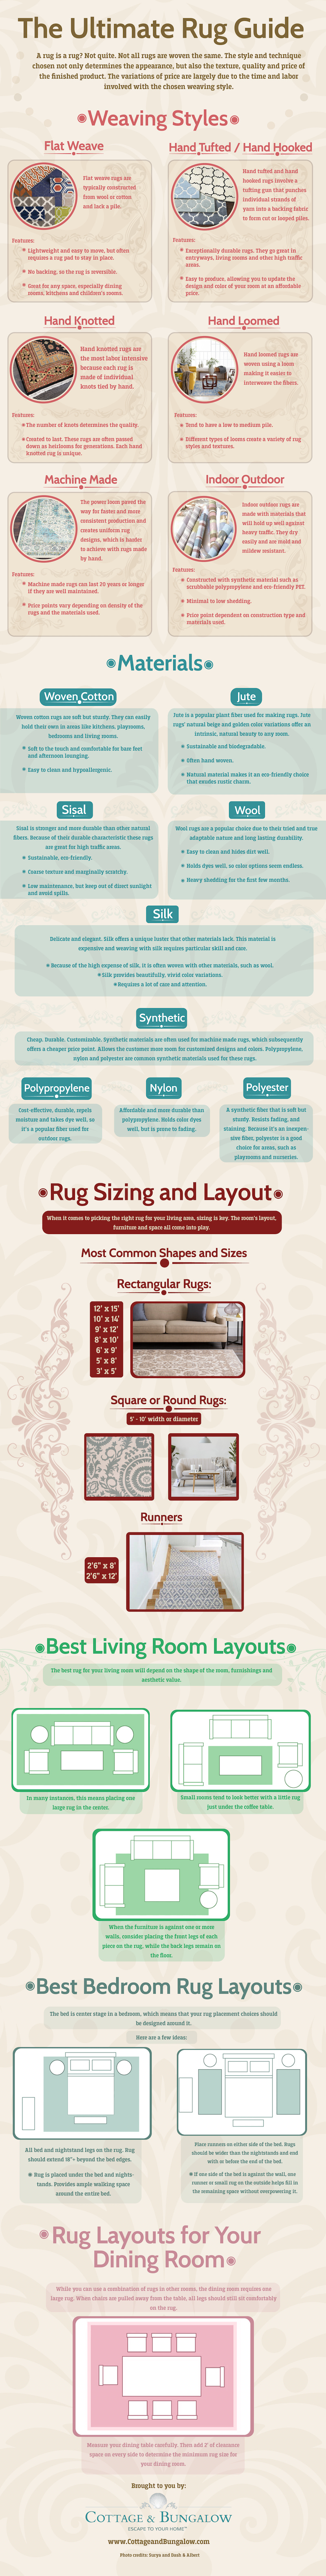 Ultimate Rug Guide Infographic